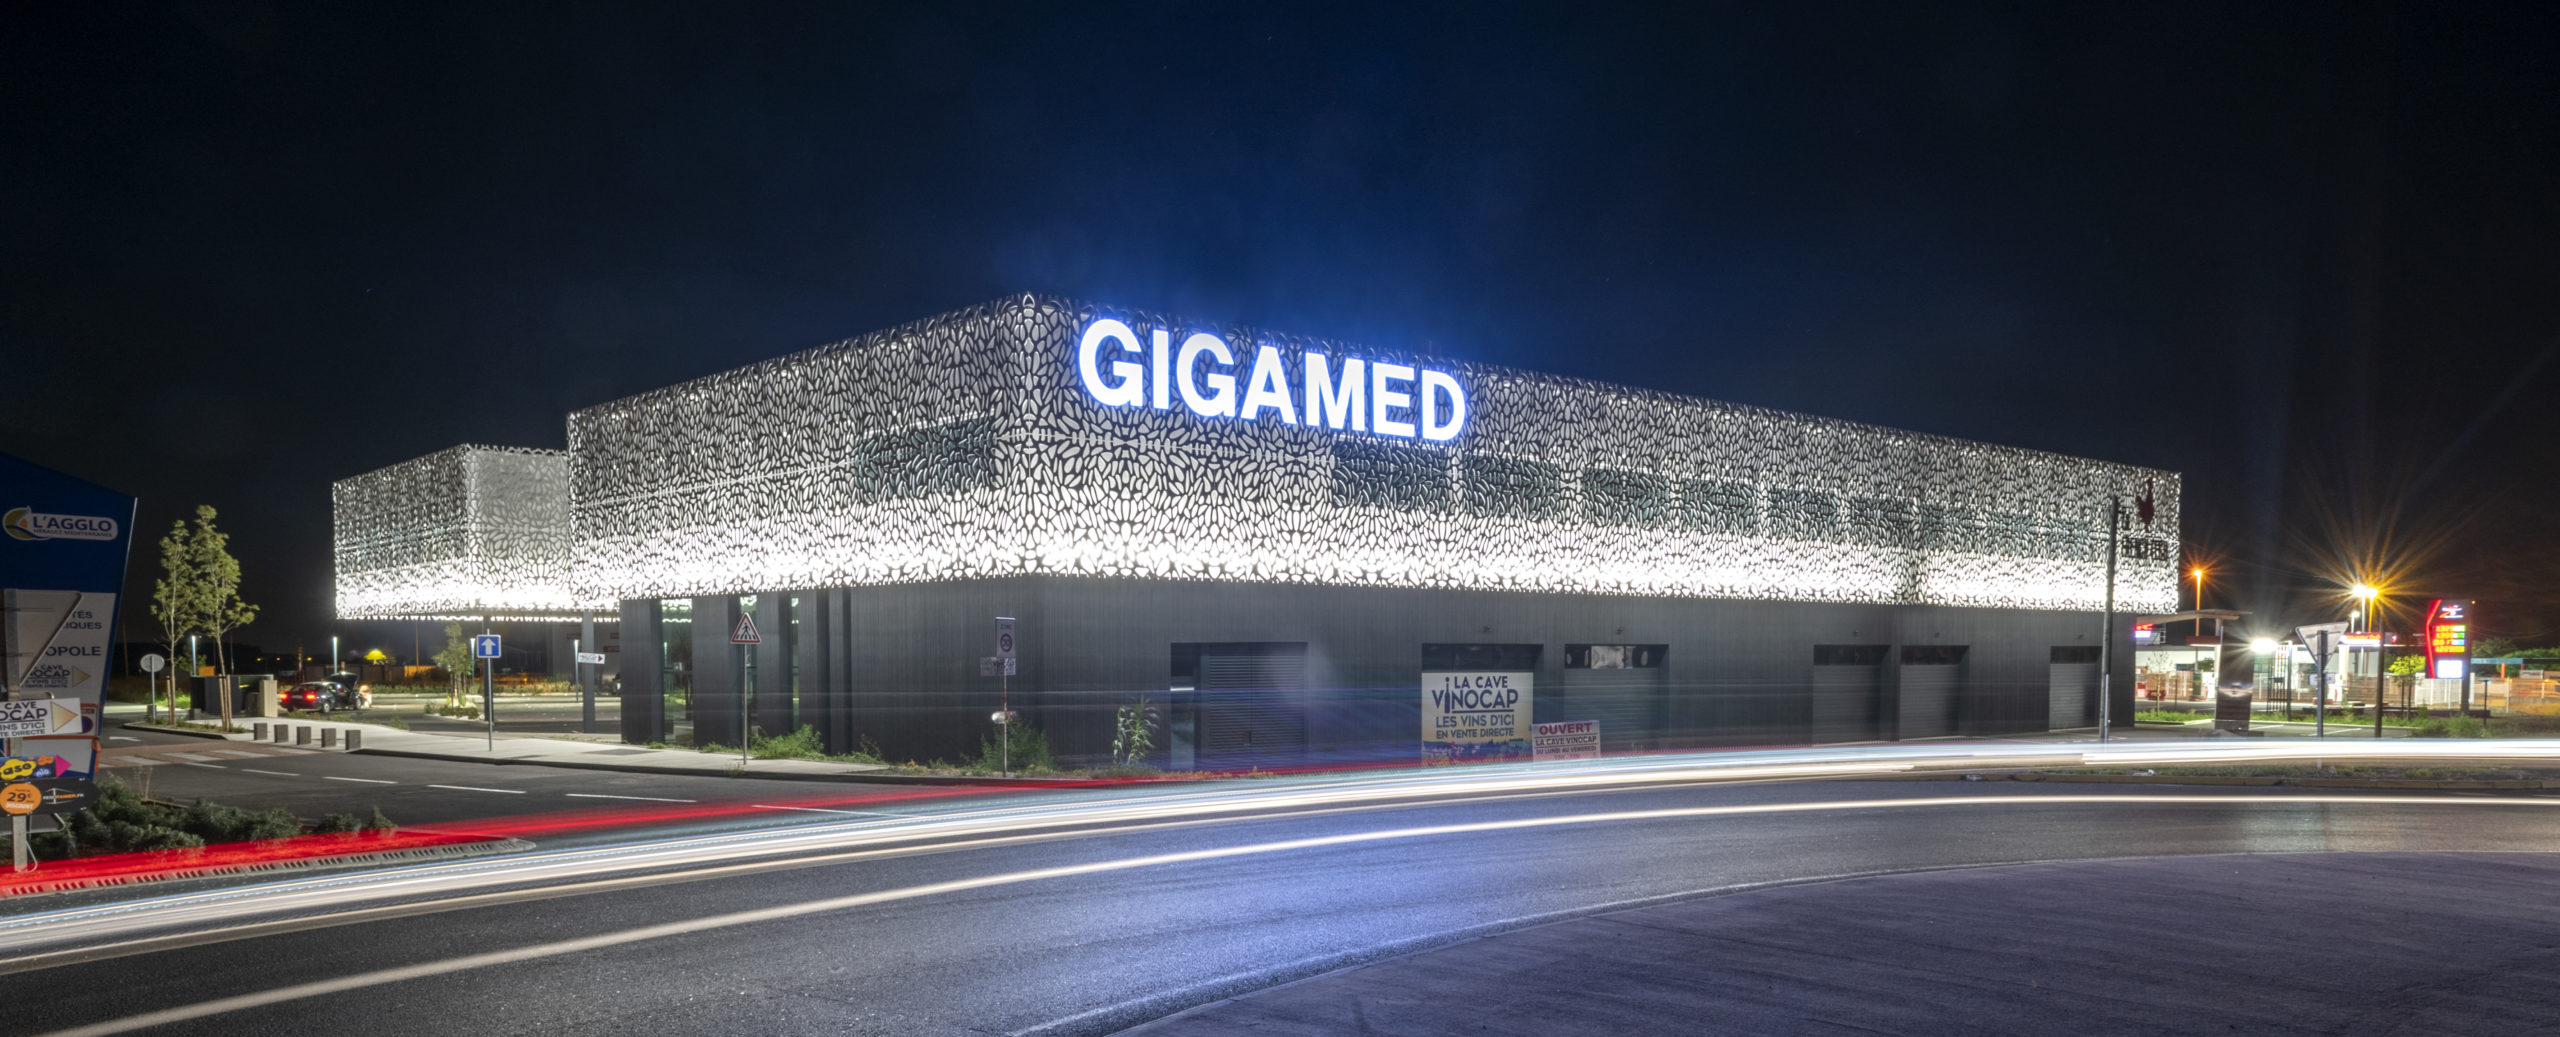 Architecture tertiaire - GIGAMED